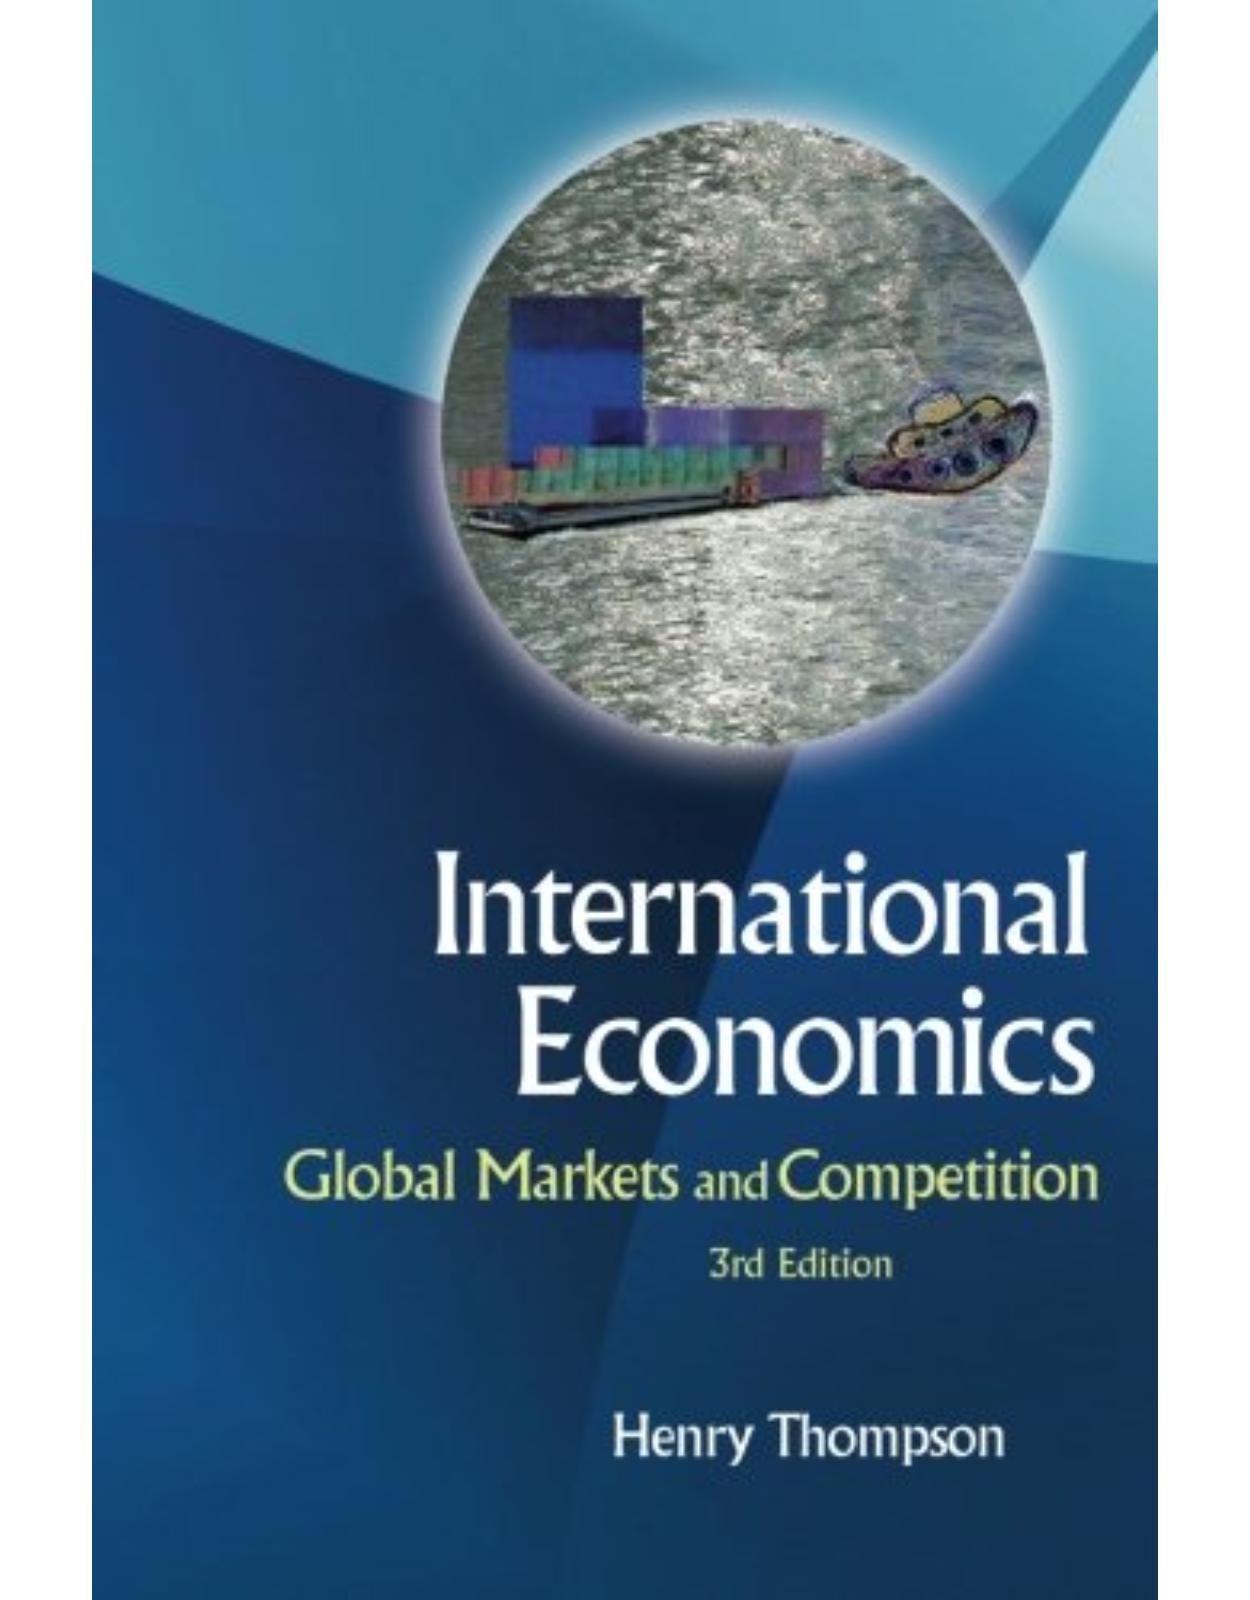 International Economics: Global Markets And Competition (3Rd Edition)